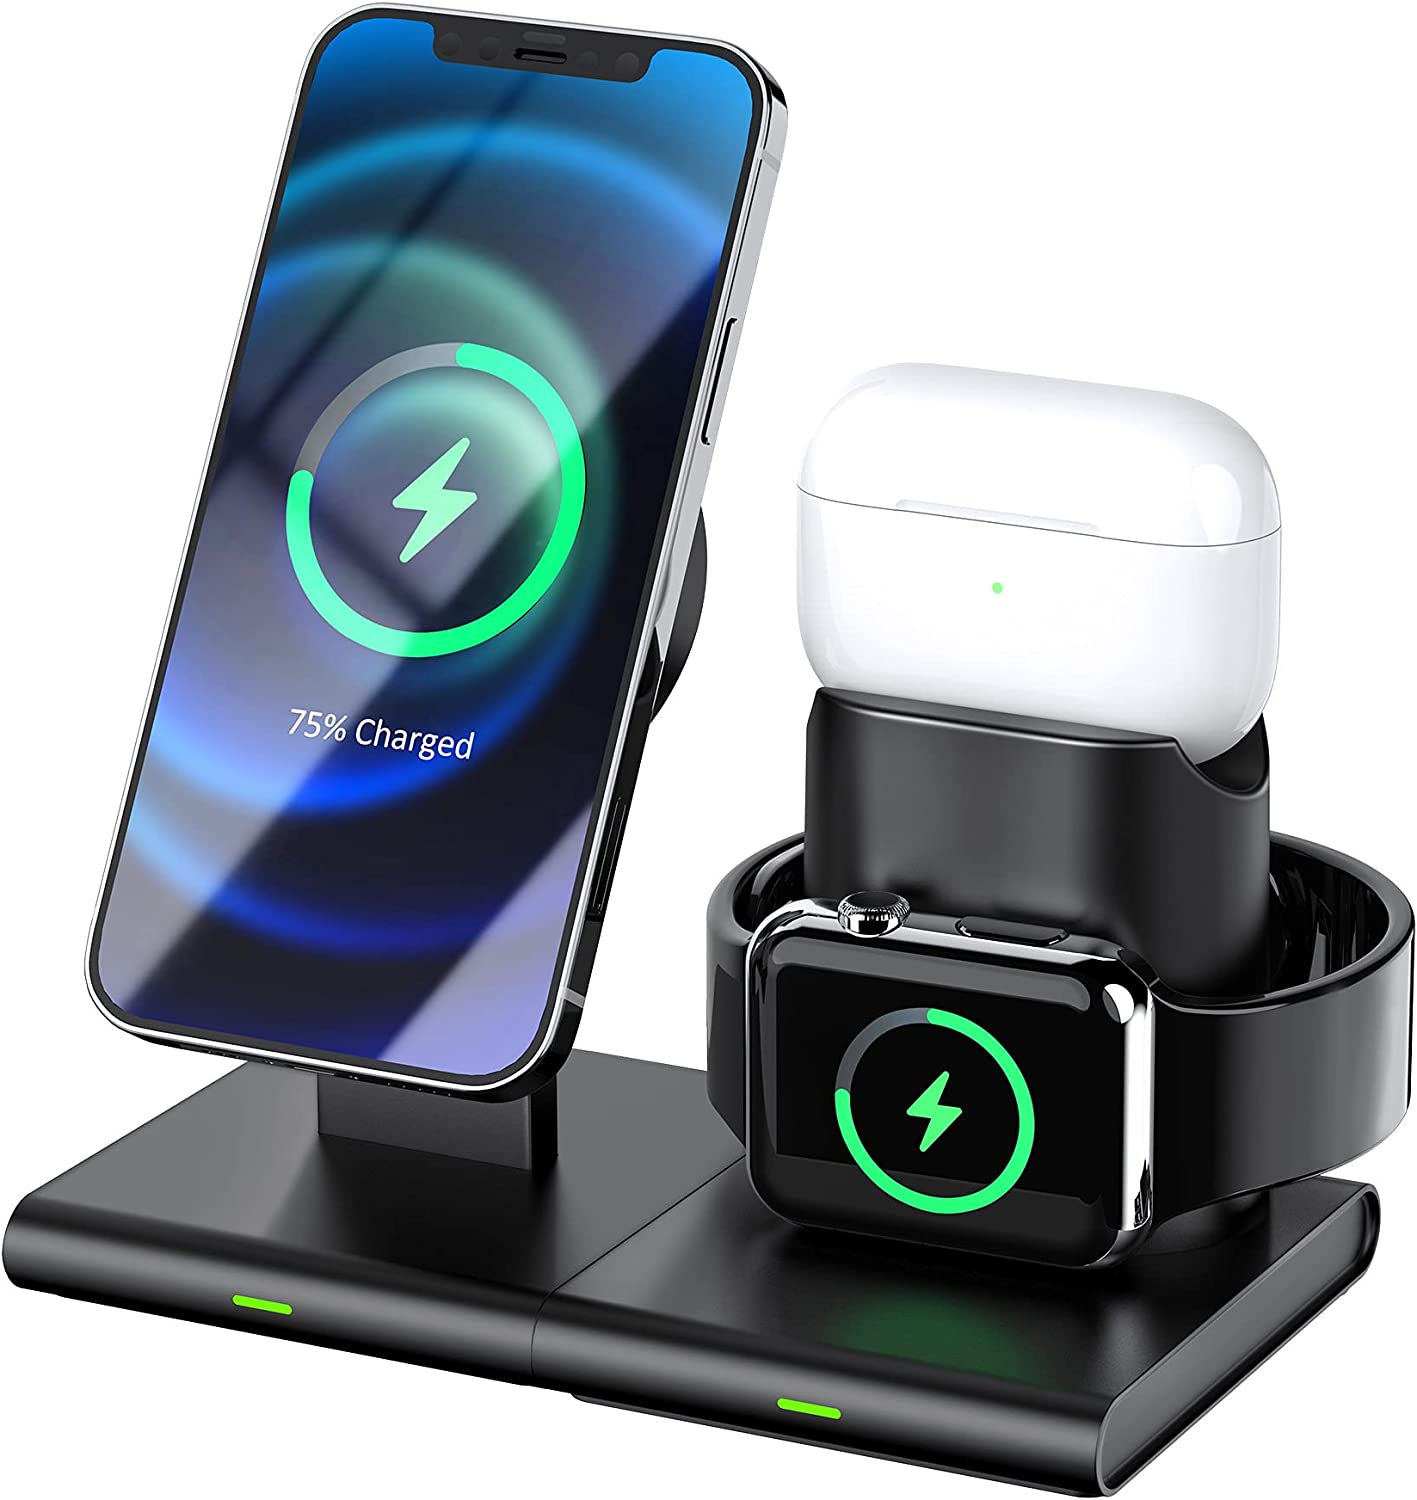 Hoidokly Magnetic Wireless Charger, 3 in 1 Wireless Charging Station Dock for Airpods Pro/2/1, iWatch 6/SE/5/4/3/2/1, Qi Fast Charging Stand for iPhone 12/12 Pro/12 Pro Max/12 Mini(NO QC 3.0 Adapter)